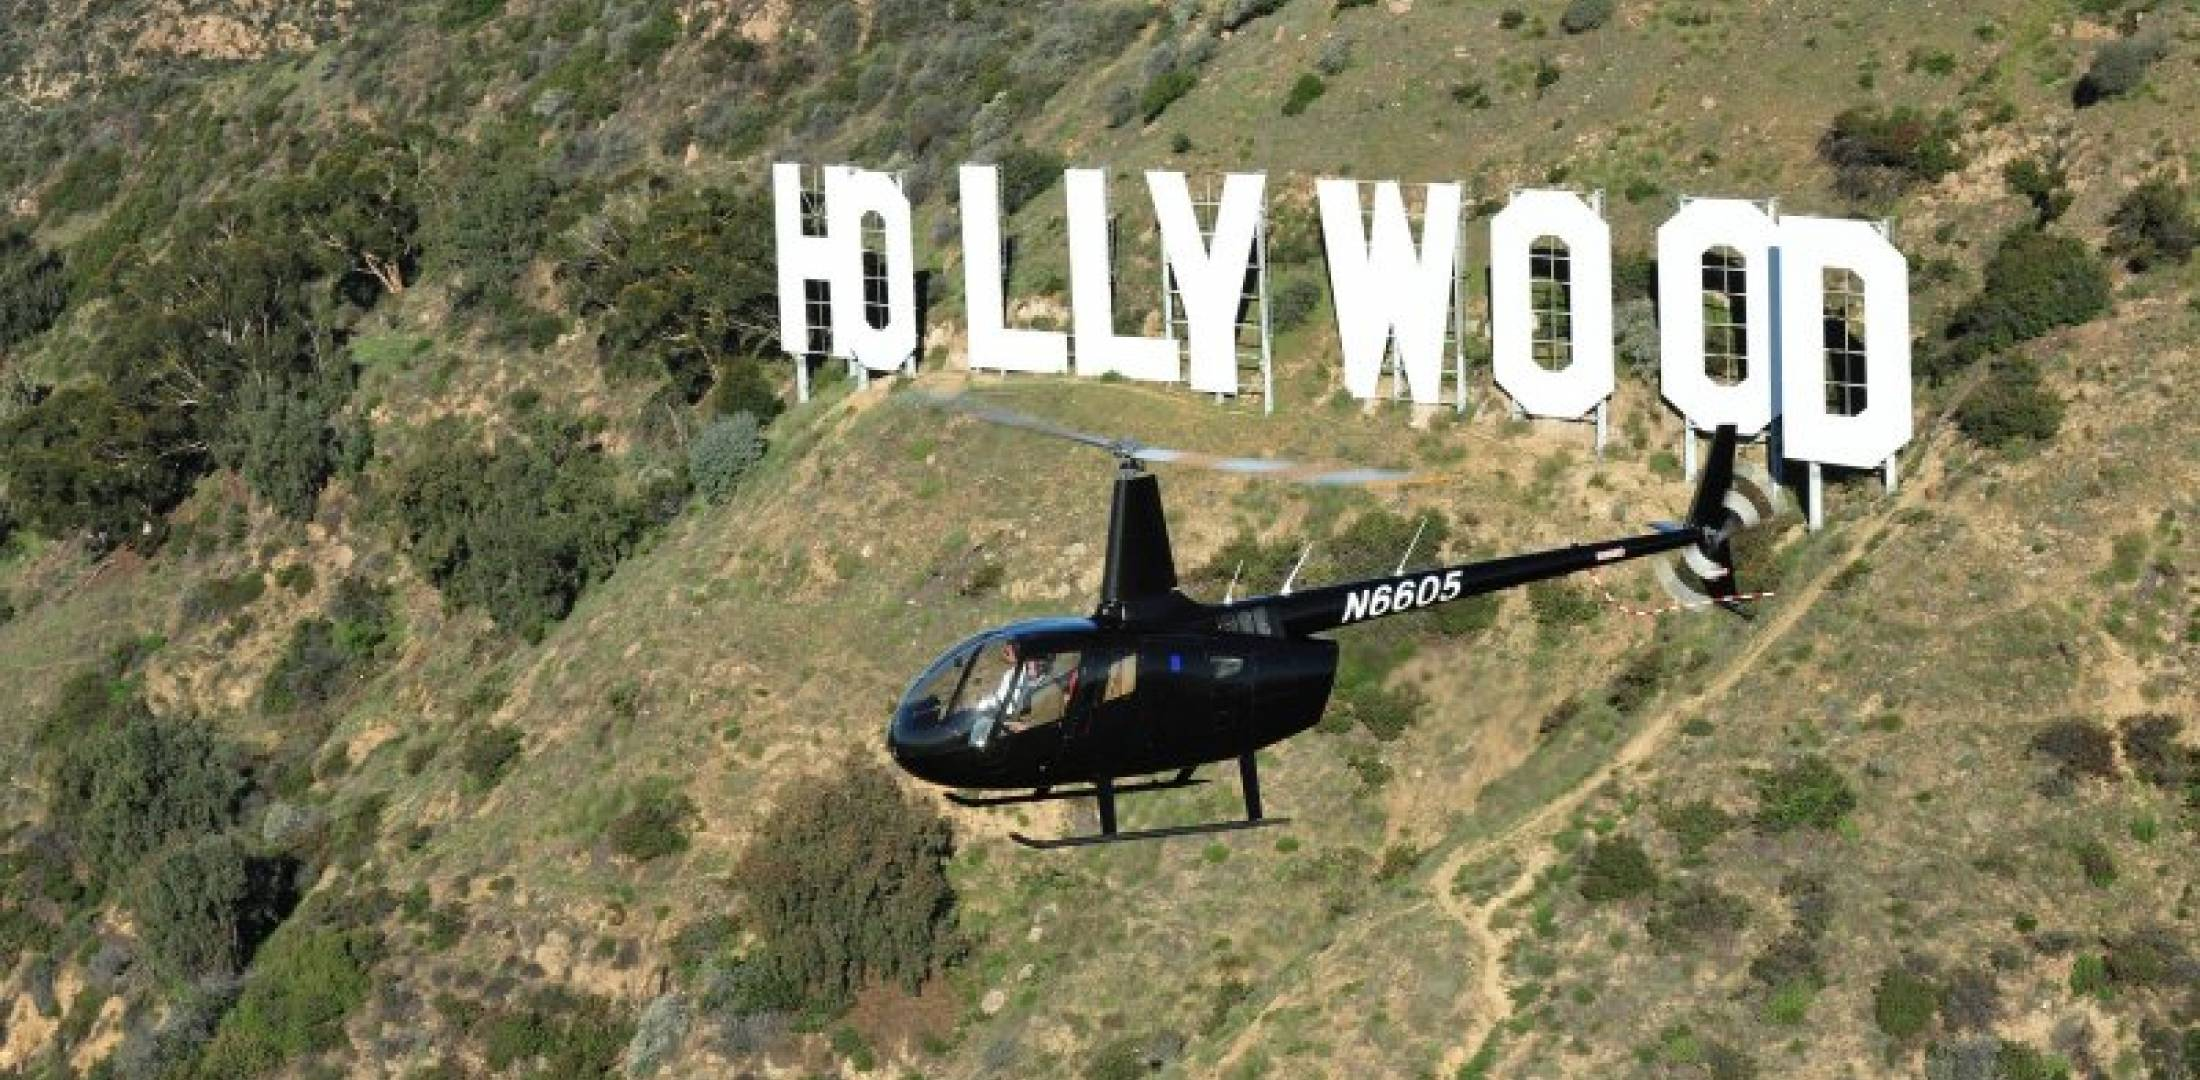 Air tour helicopter over Hollywood sign